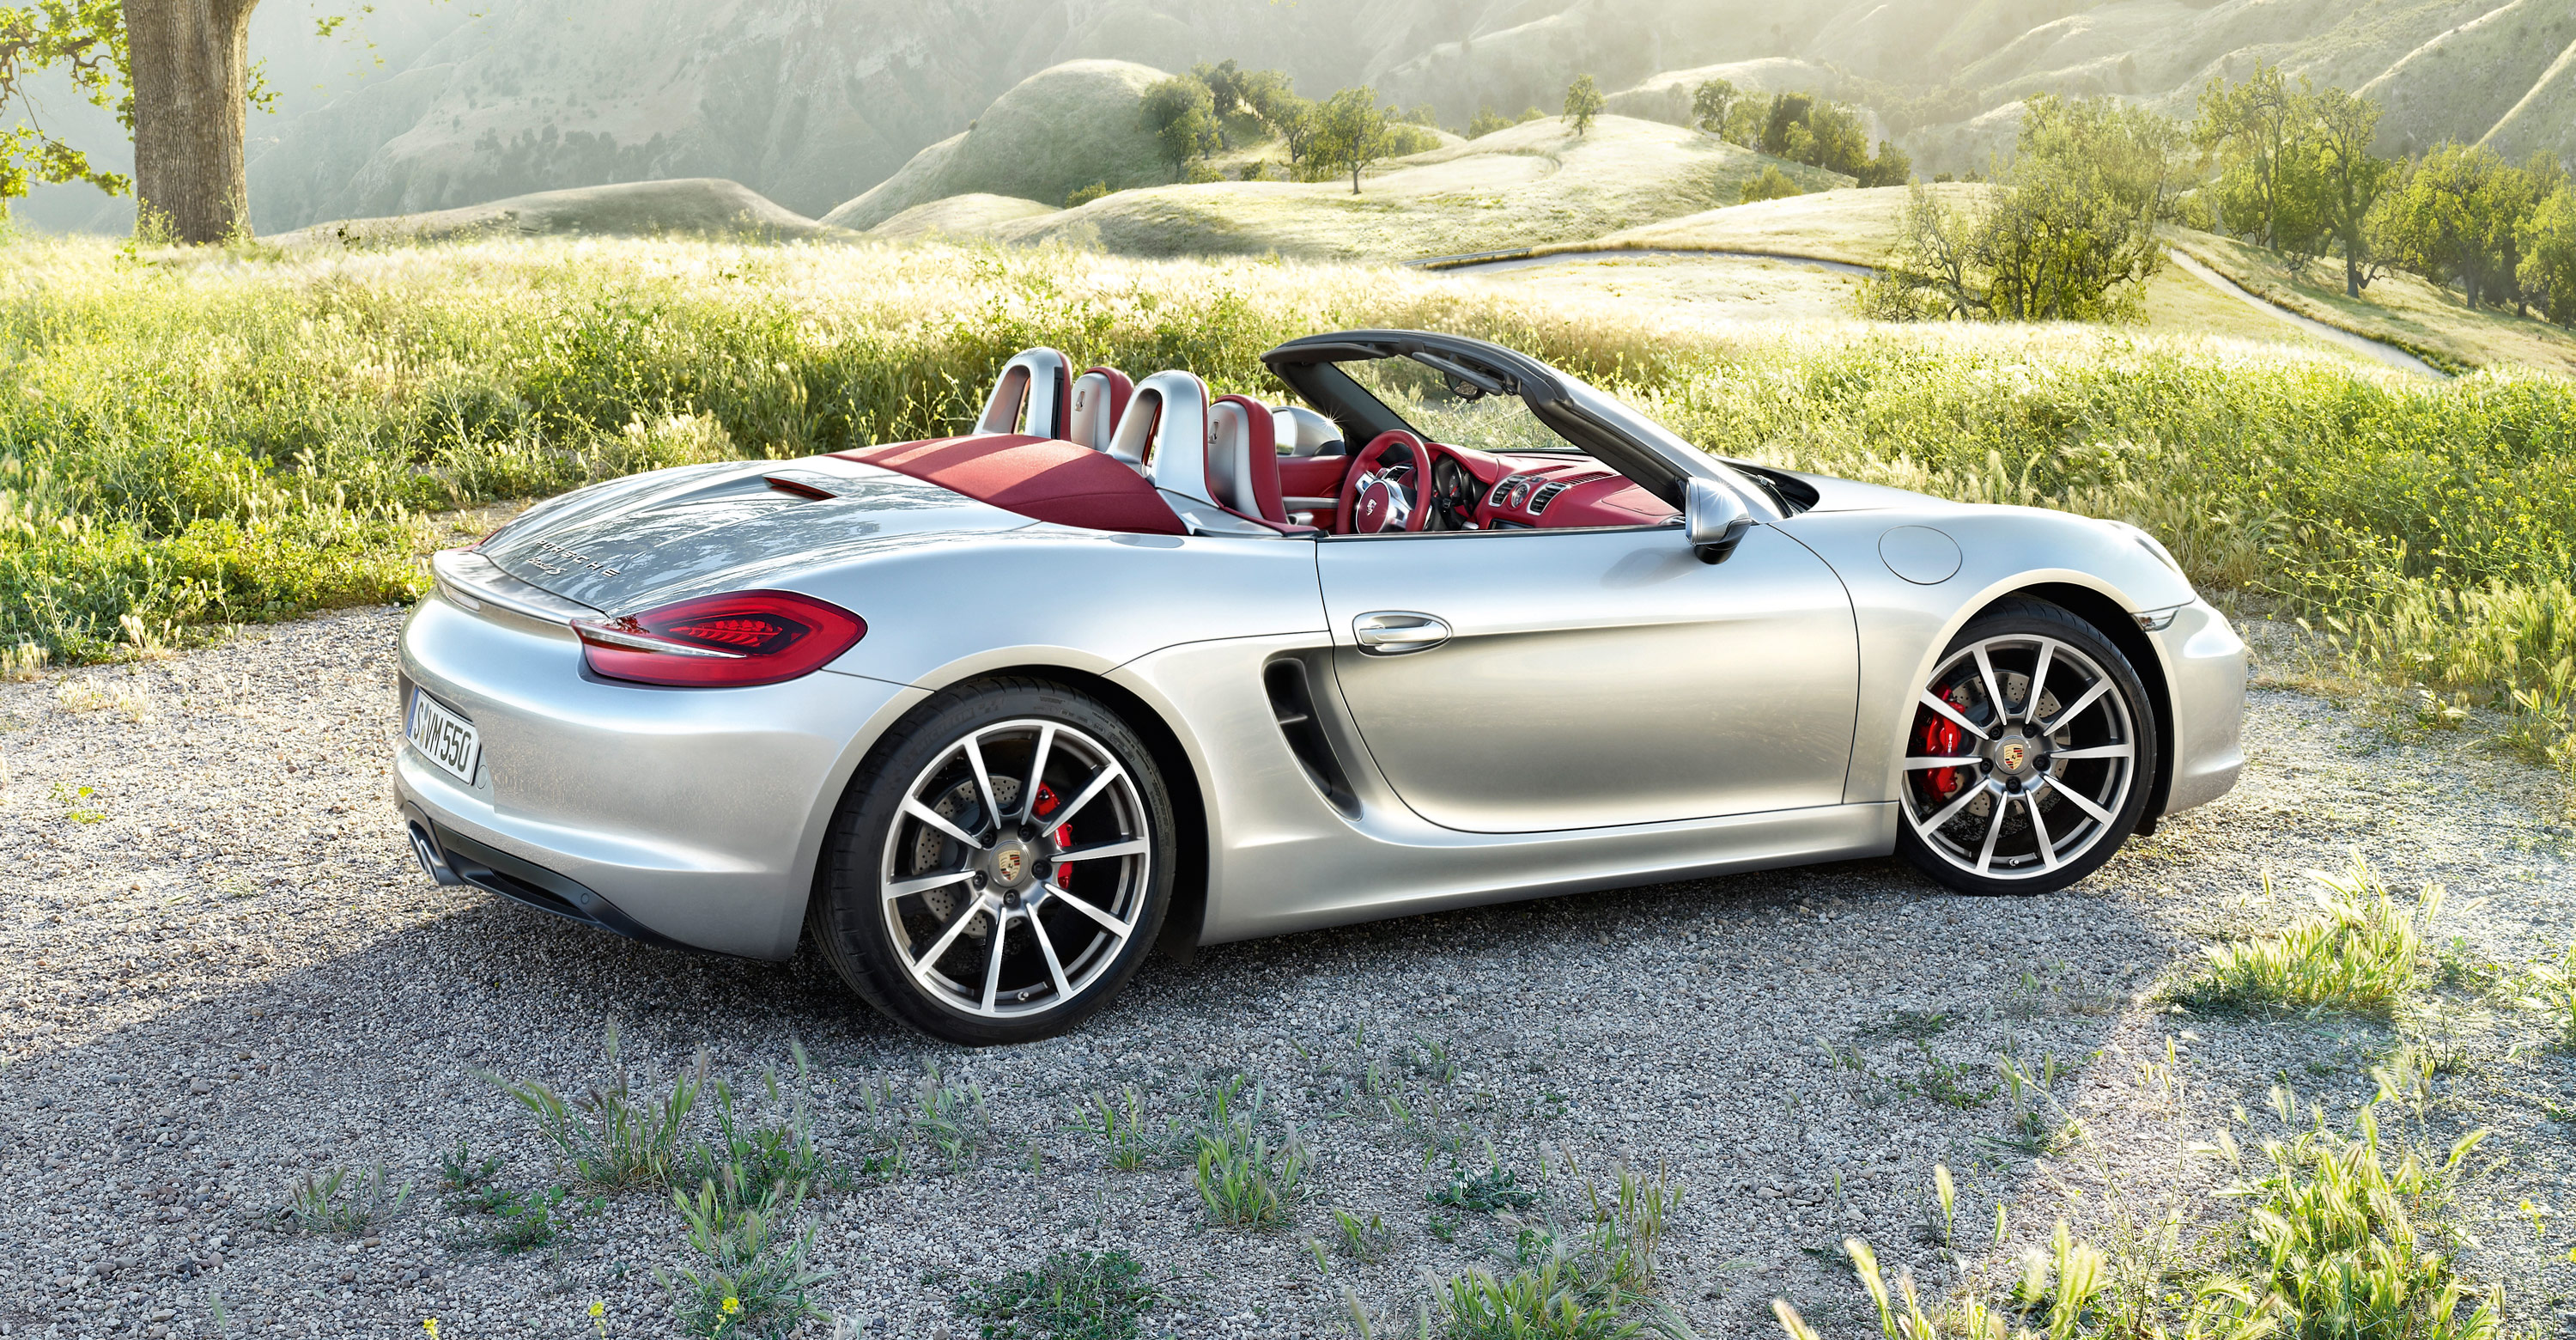 2012 Porsche Boxster S - Side view